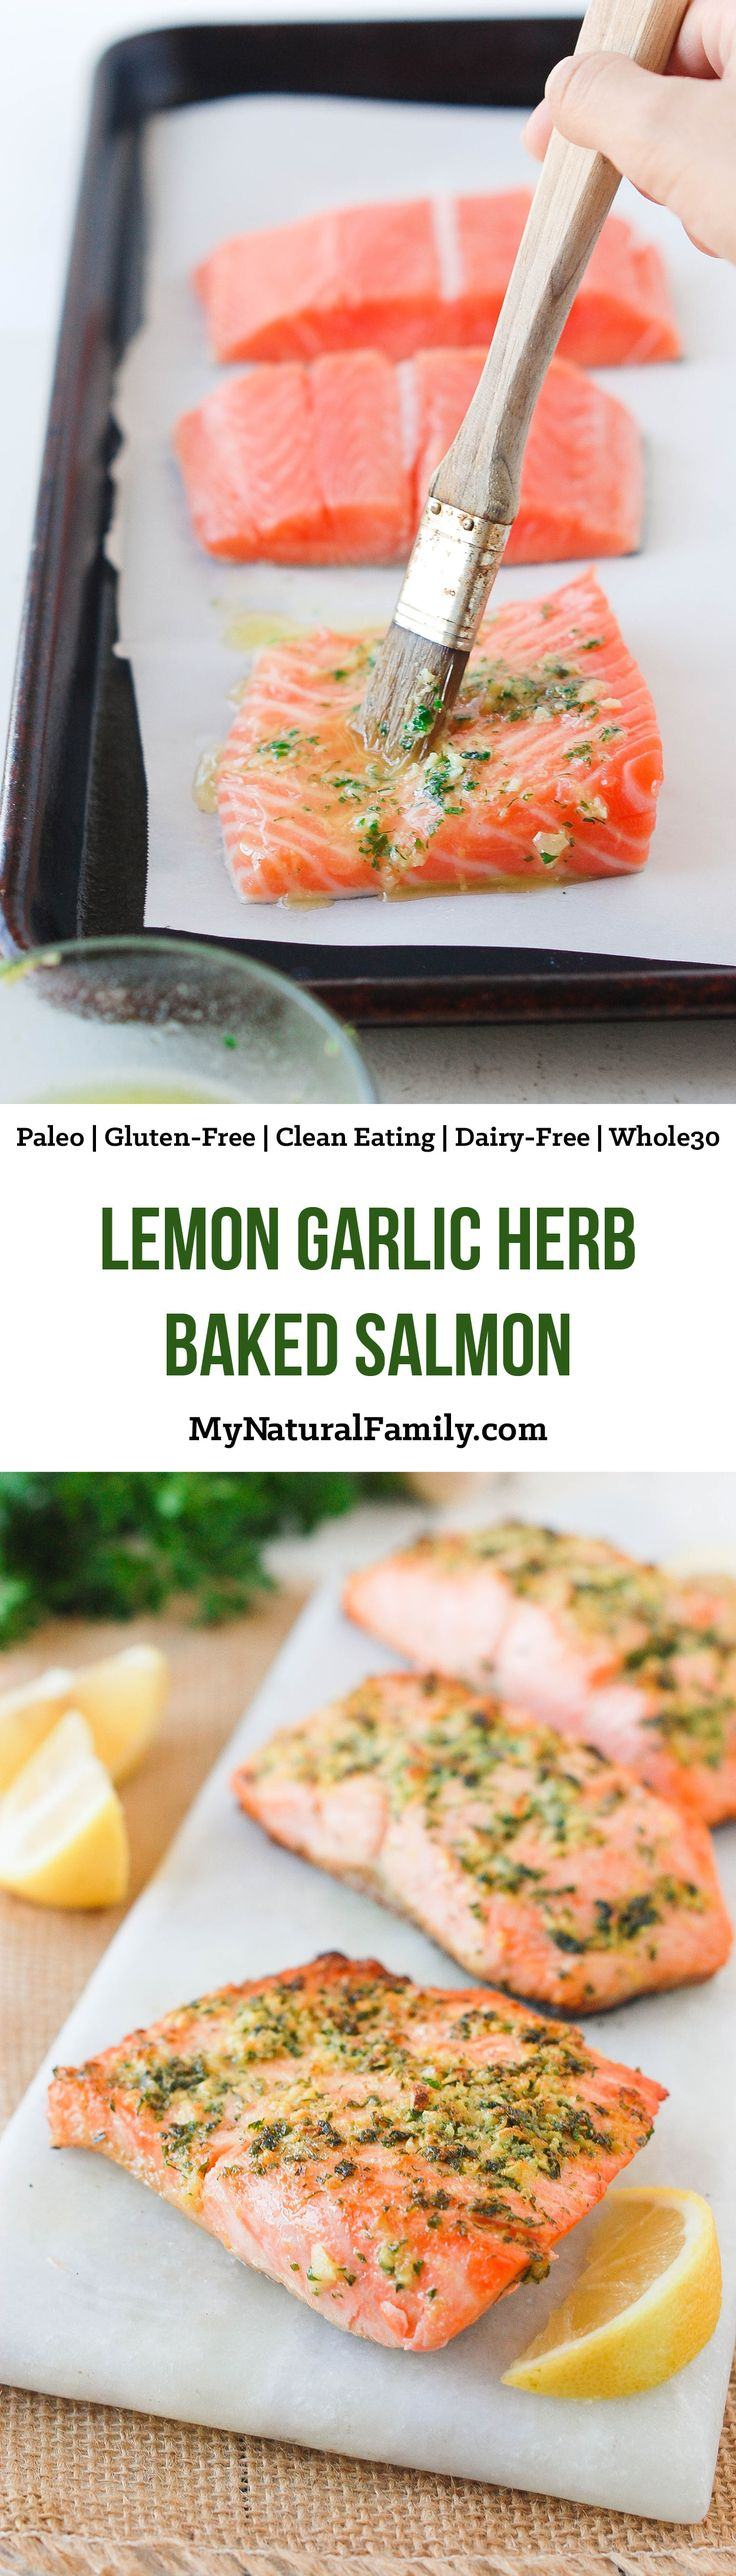 Best 25+ Baked Fish Ideas Only On Pinterest  Baked Tilapia Recipes, Fish  Dinner And Healthy Fish Recipes